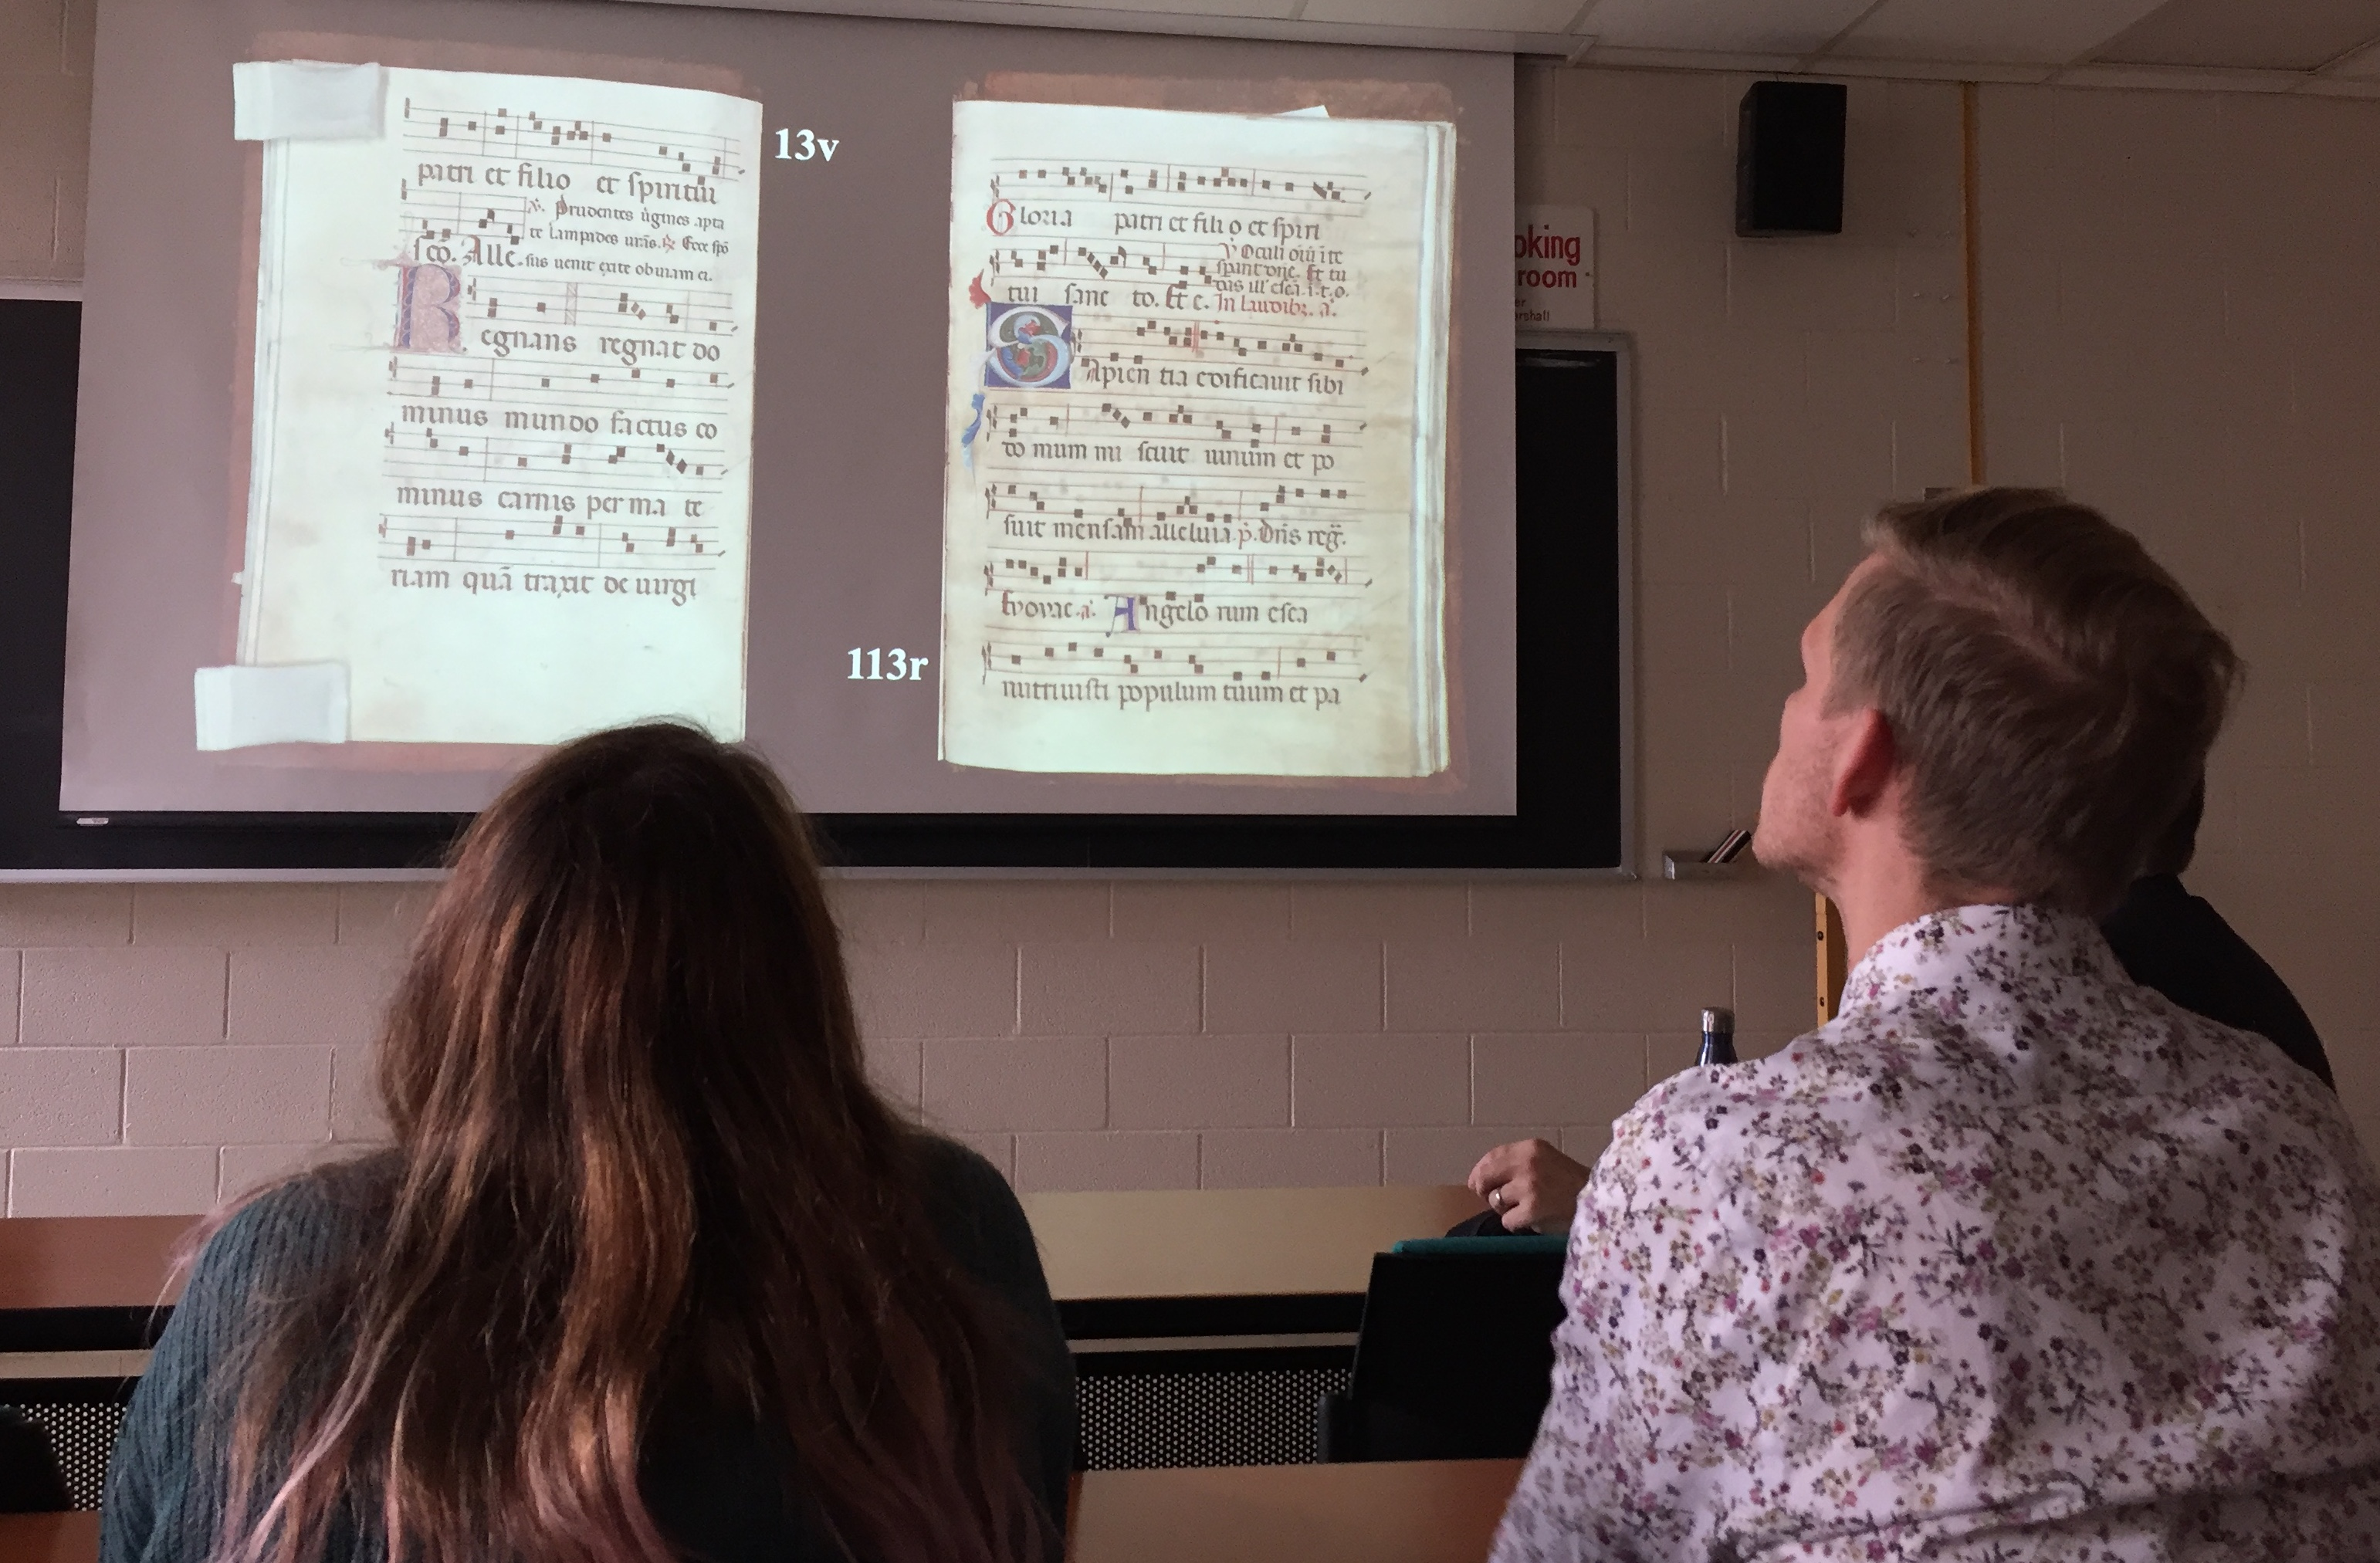 AMA conference 2019 - Our members study McGill, Medieval Manuscript 73.